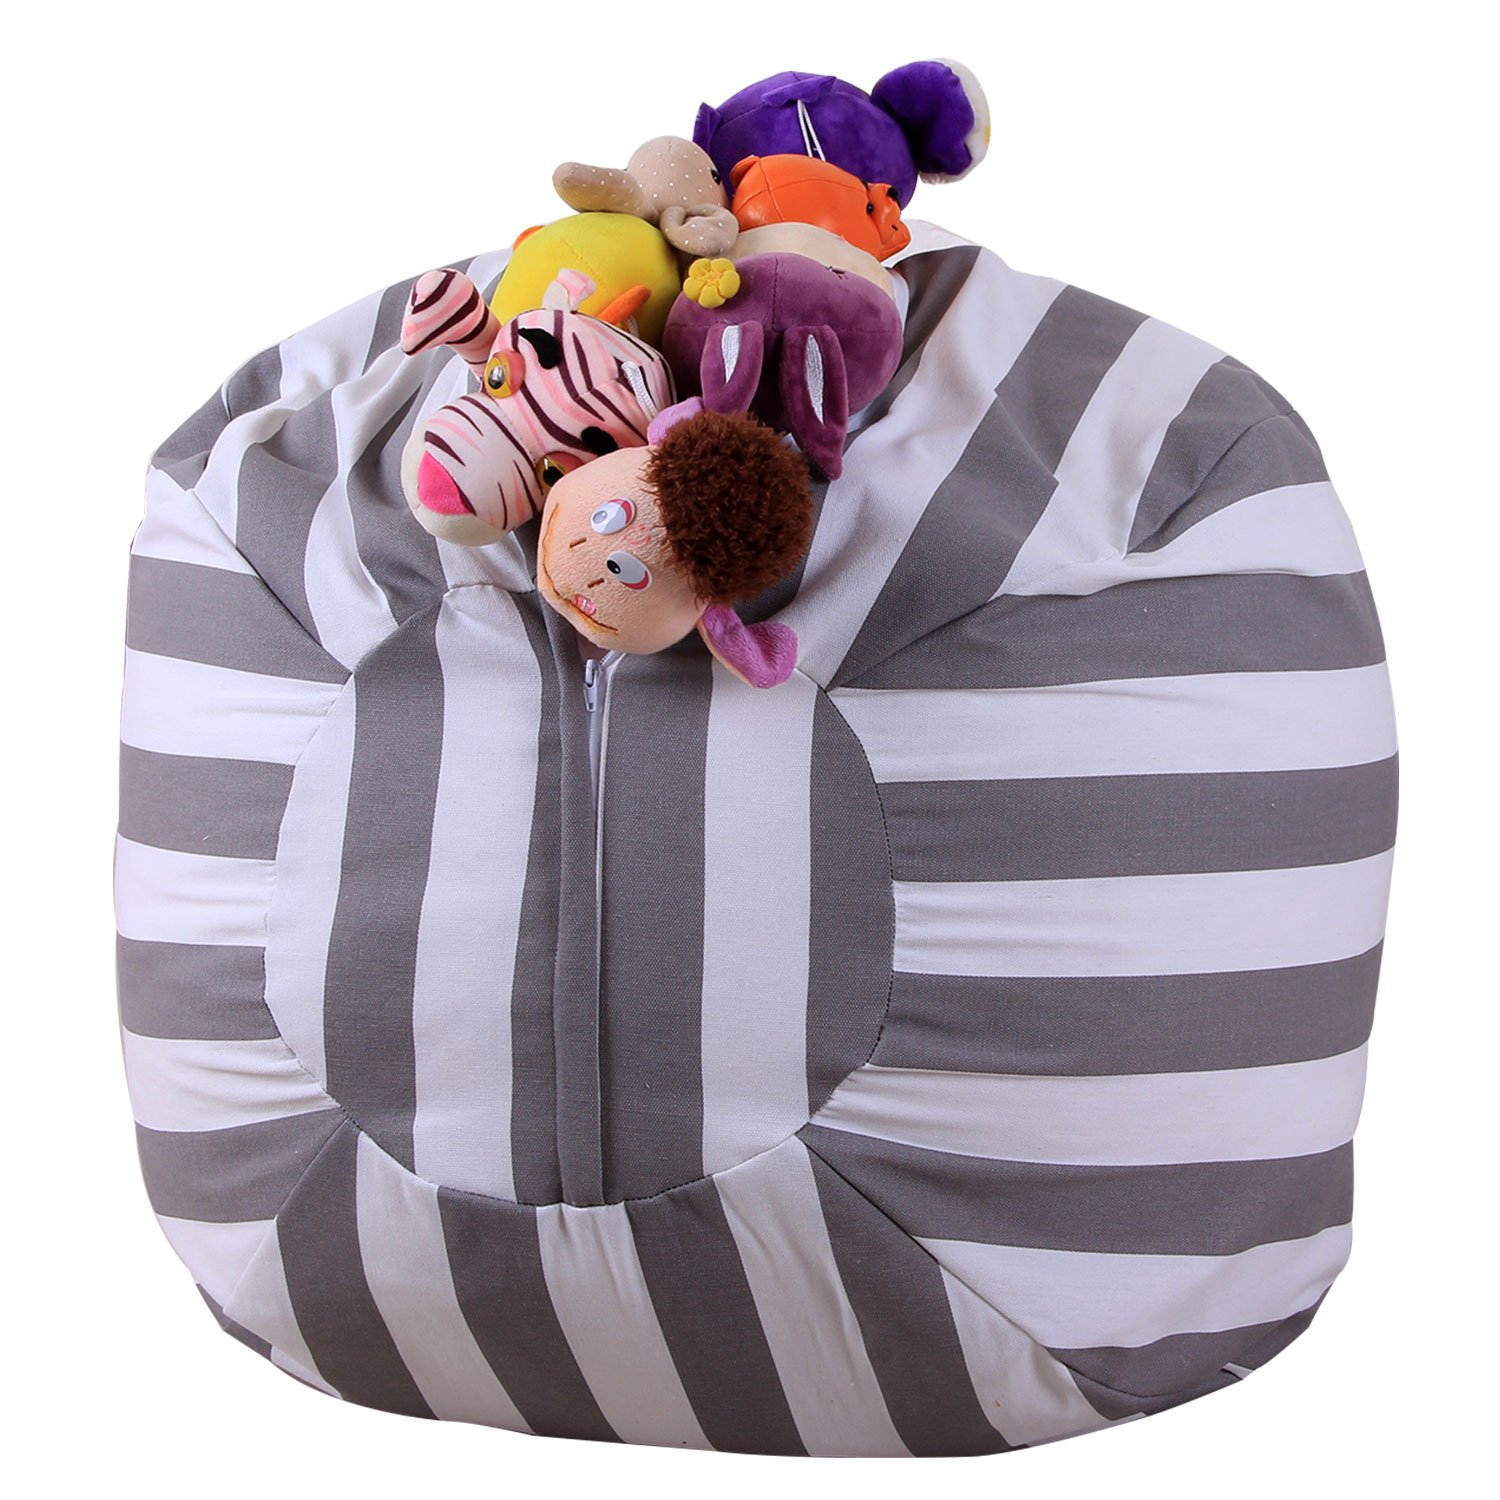 Stuffed Animal Storage Bean Bag - Toy Storage Children's Chair Cover Children Chair - Clean up the Room and Put Those Critters to Work for You! (26'') by Yonfro (Image #1)